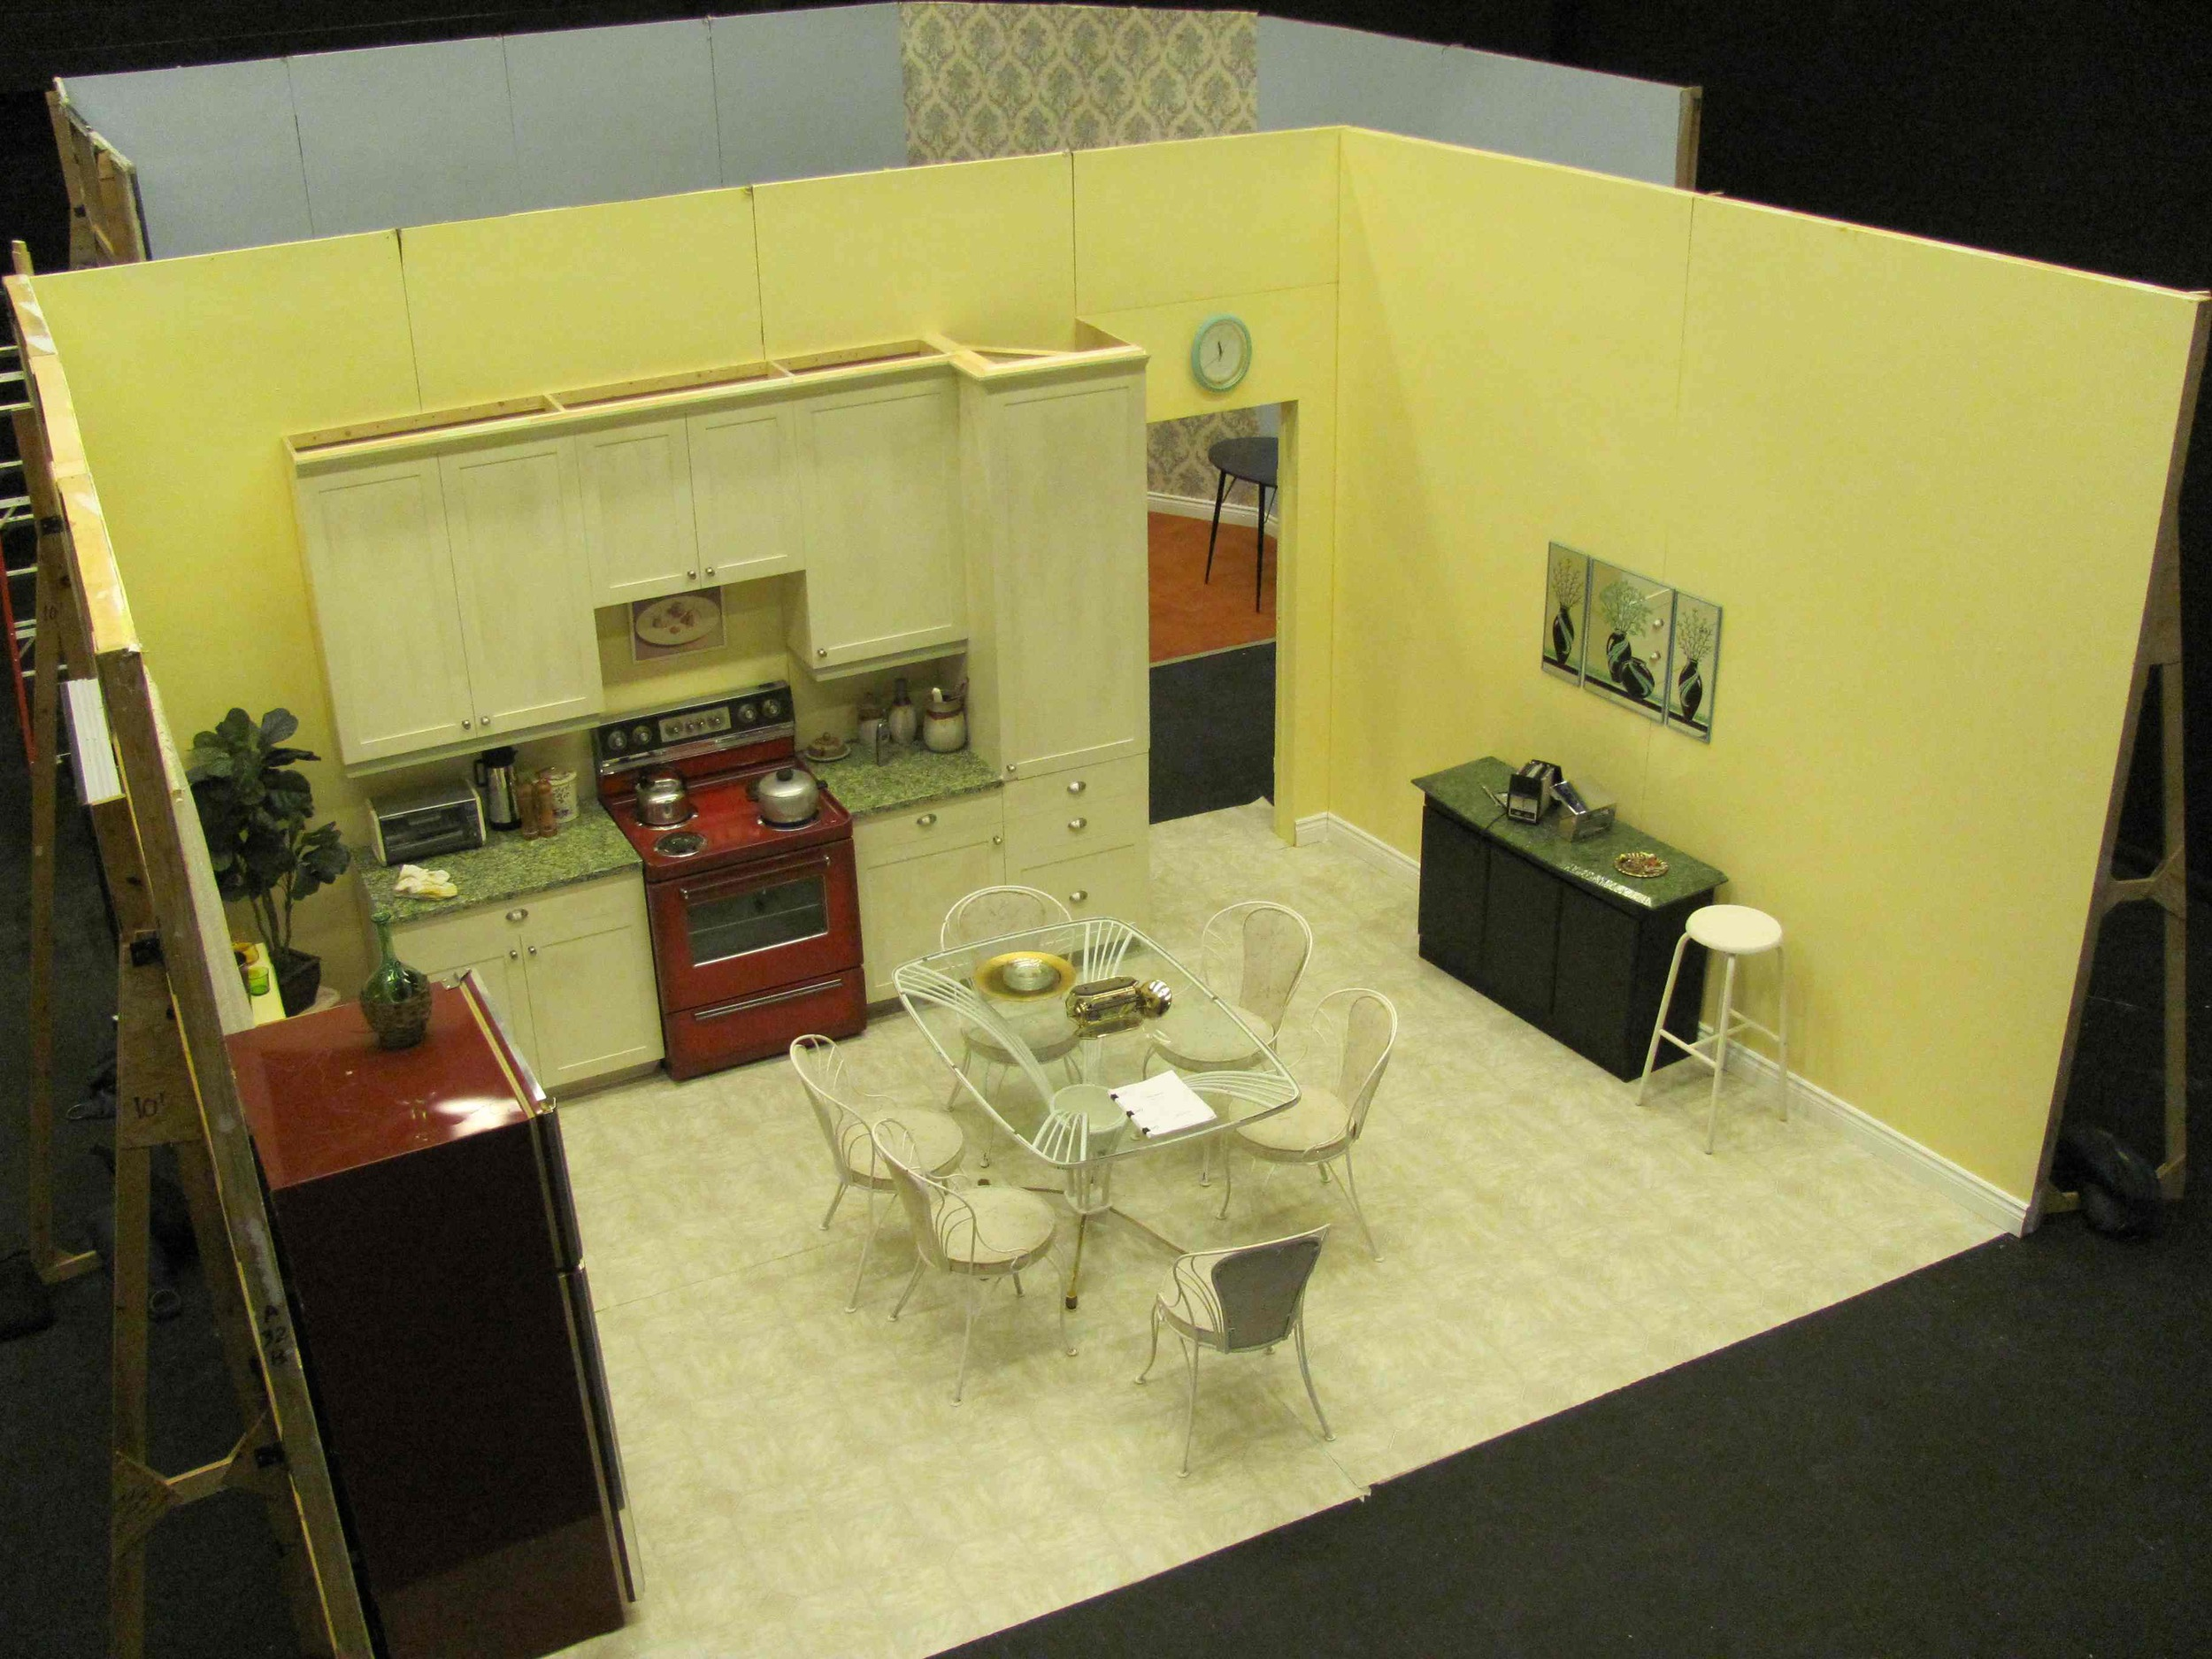 production design Amy Keith